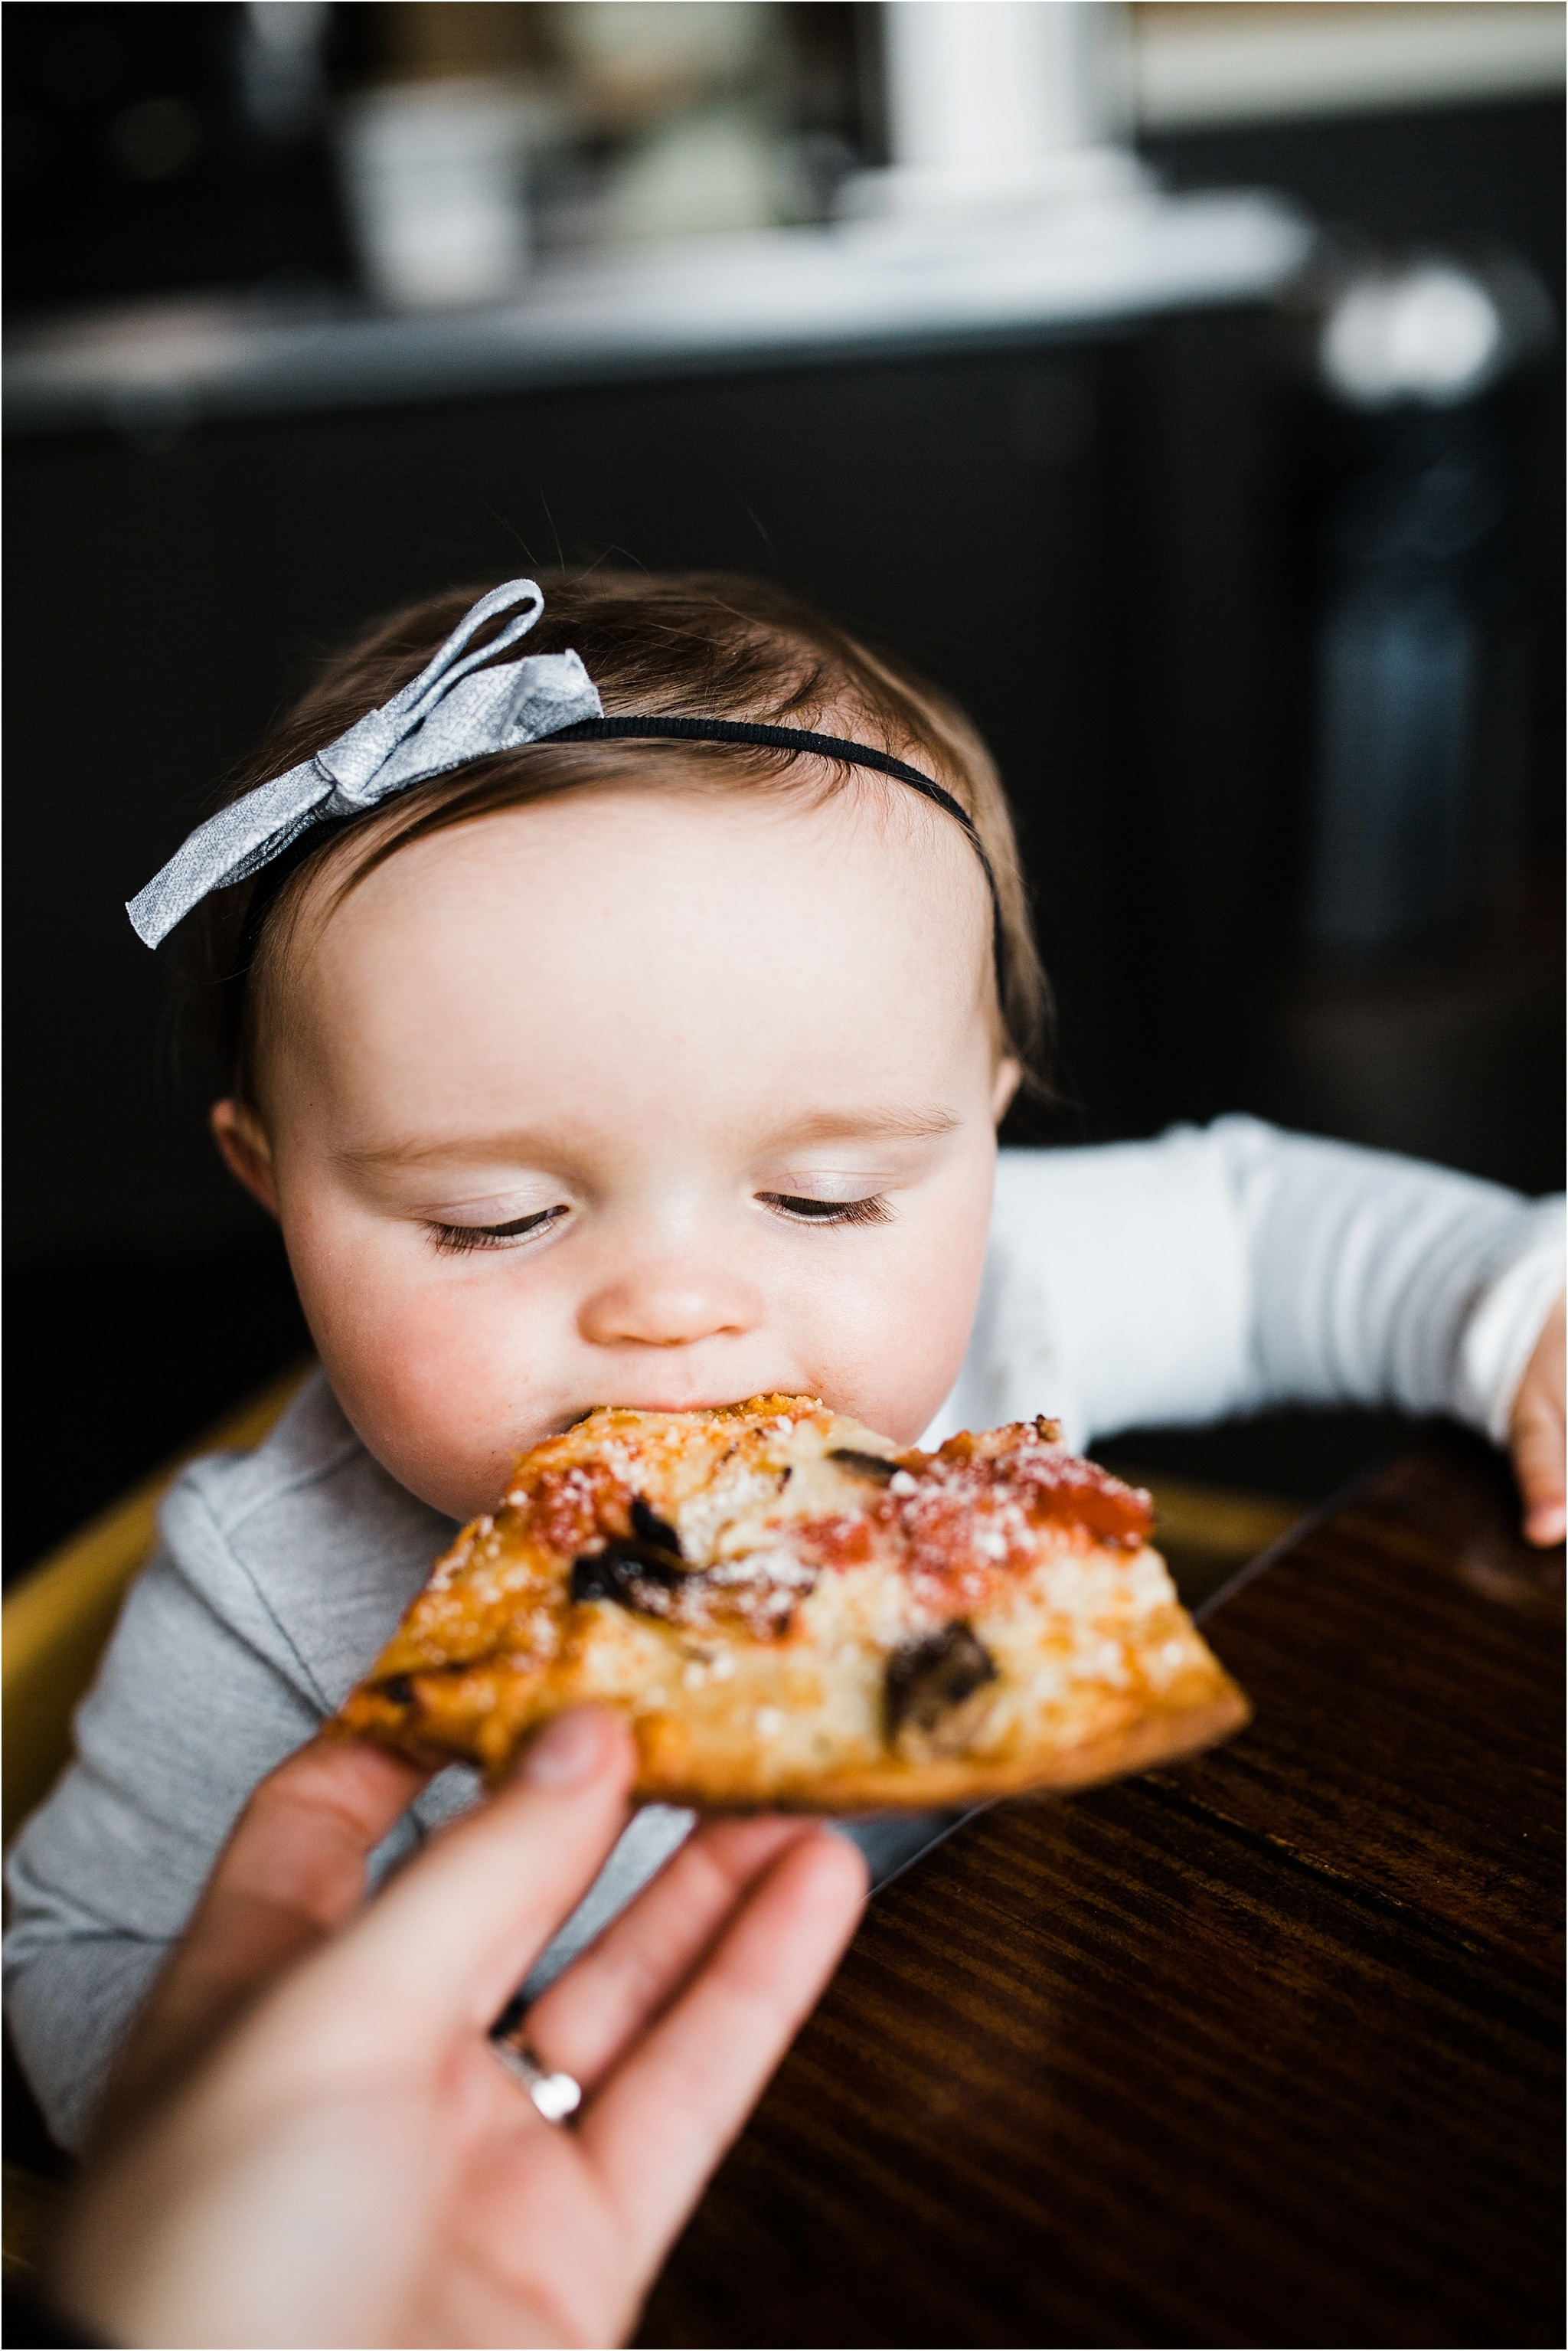 9 month old eating pizza for the first time